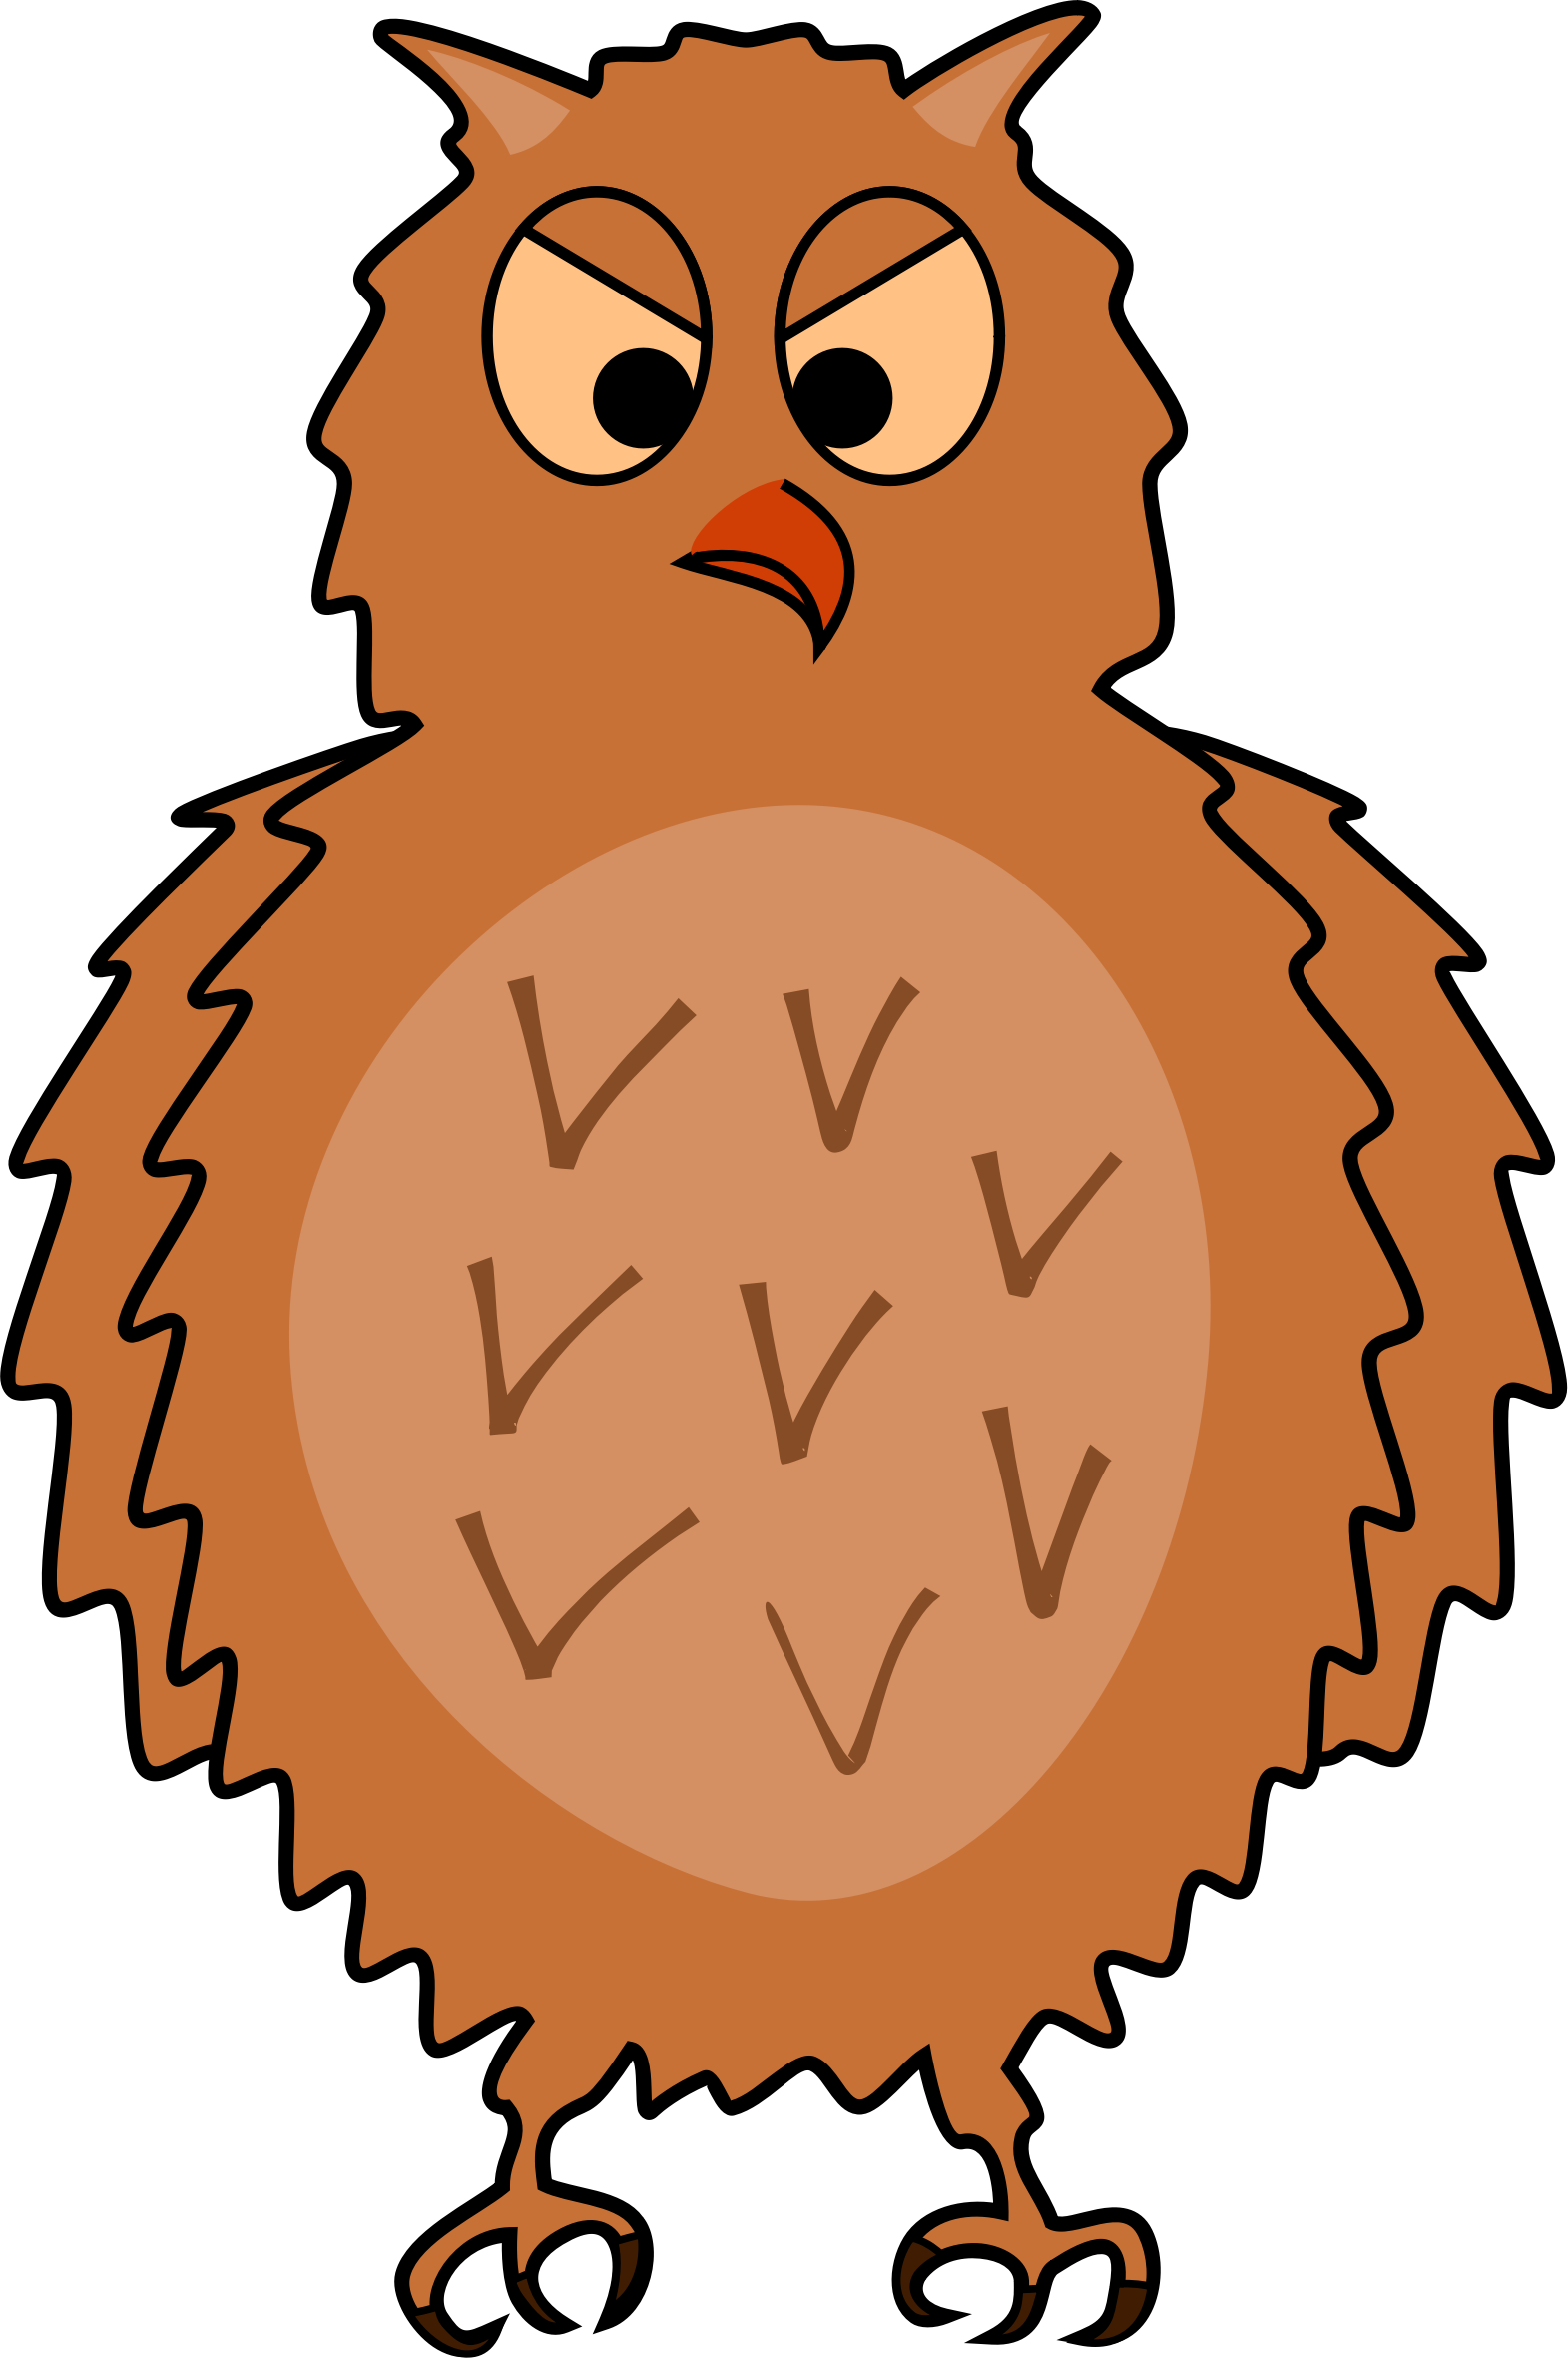 Enraged front view big. Phone clipart owl